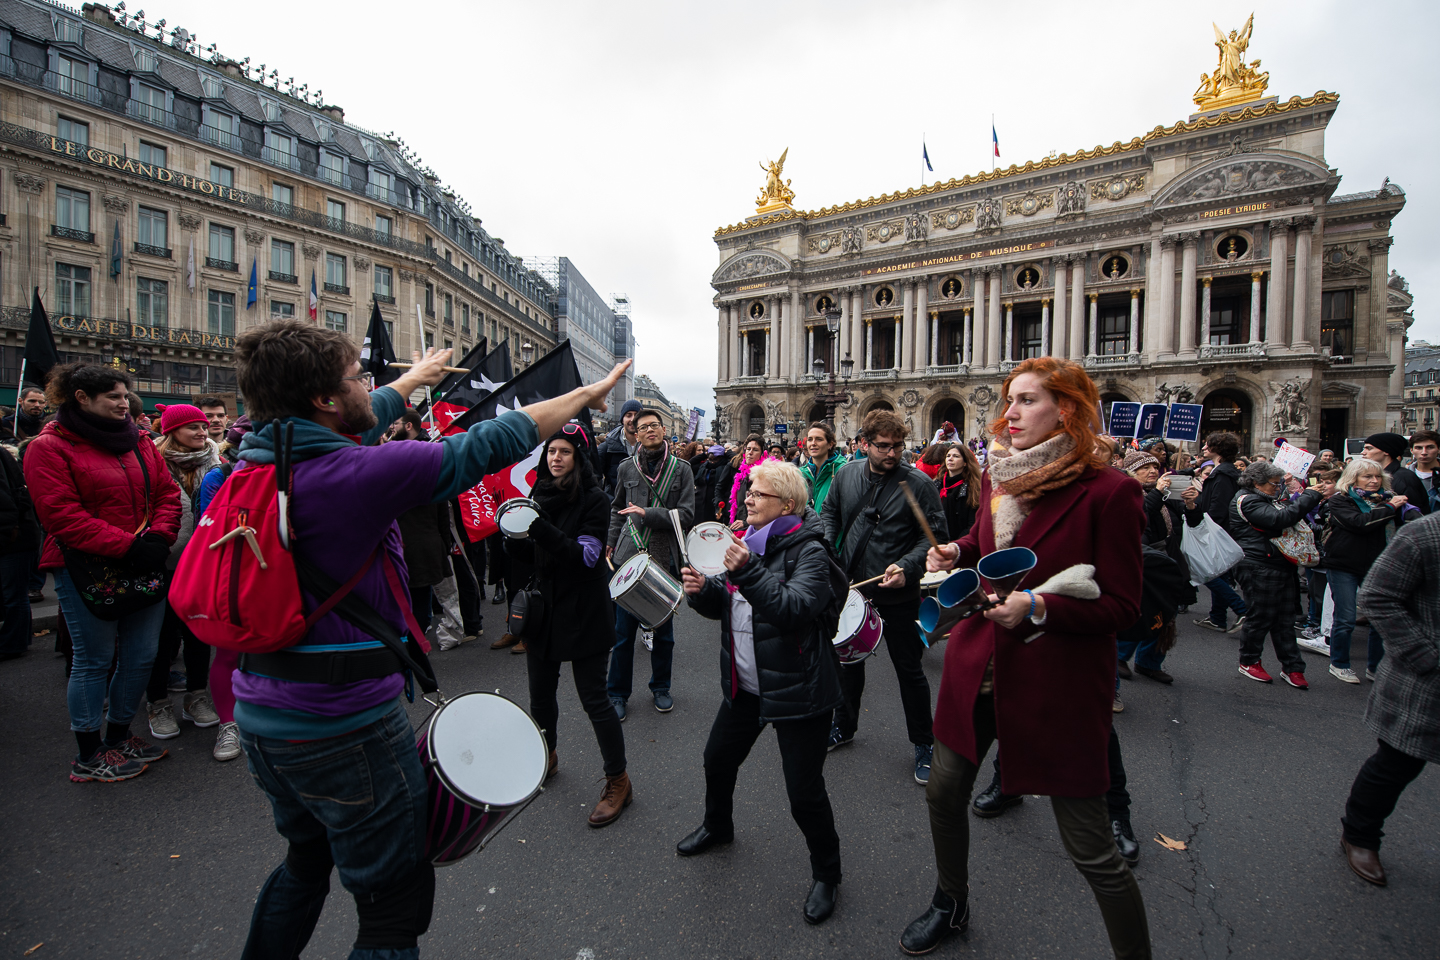 Marching band in front of the Opera Garnier at the beginning of the Nous Toutes march.